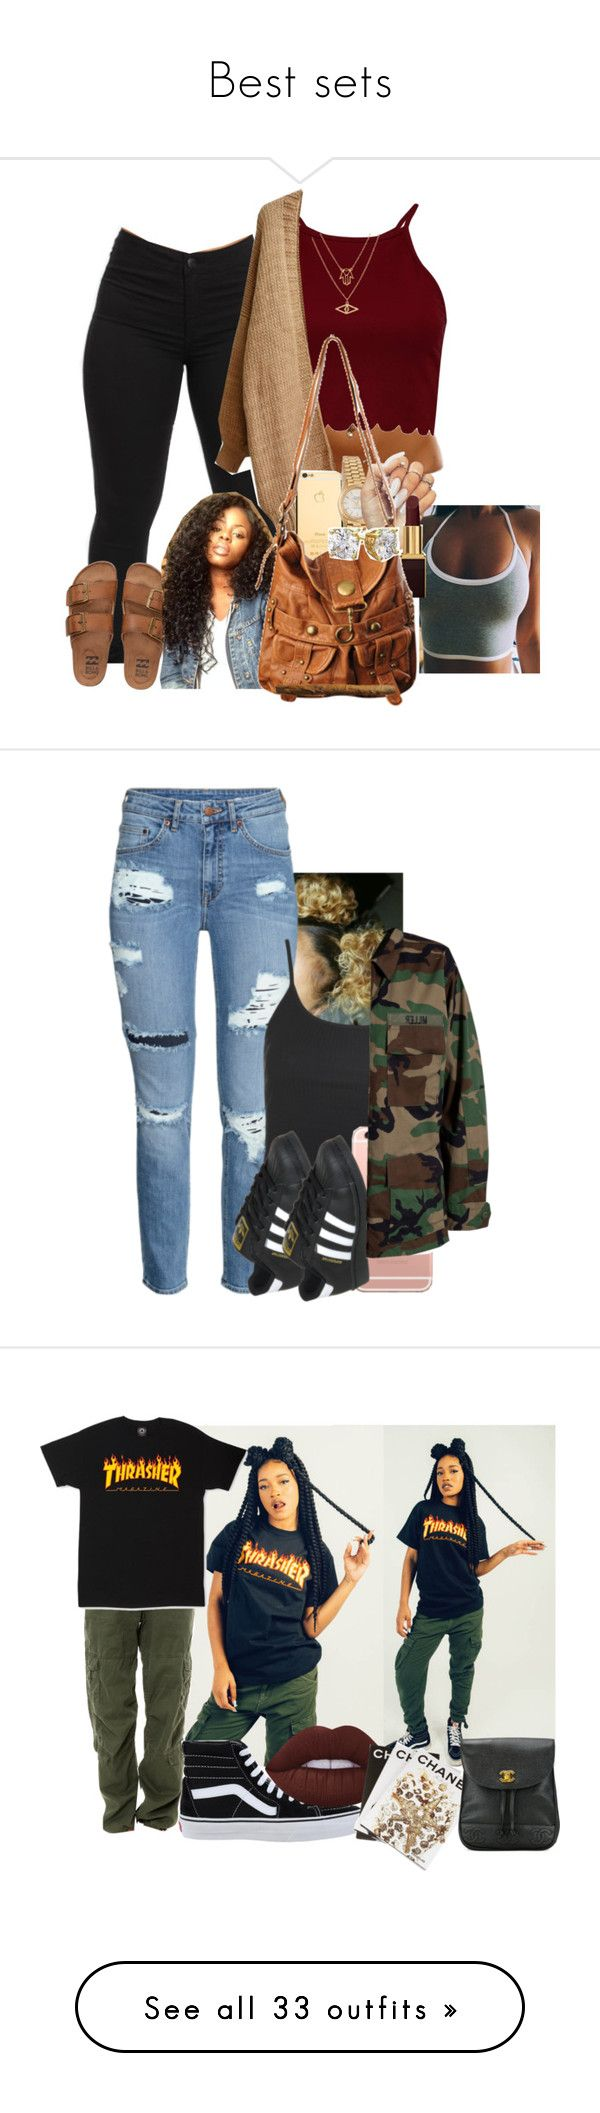 """""""Best sets"""" by simoneswagg on Polyvore featuring Billabong, Rolex, Tom Ford, Forever 21, Chicnova Fashion, Topshop, adidas, Modström, Rothco and Vans"""